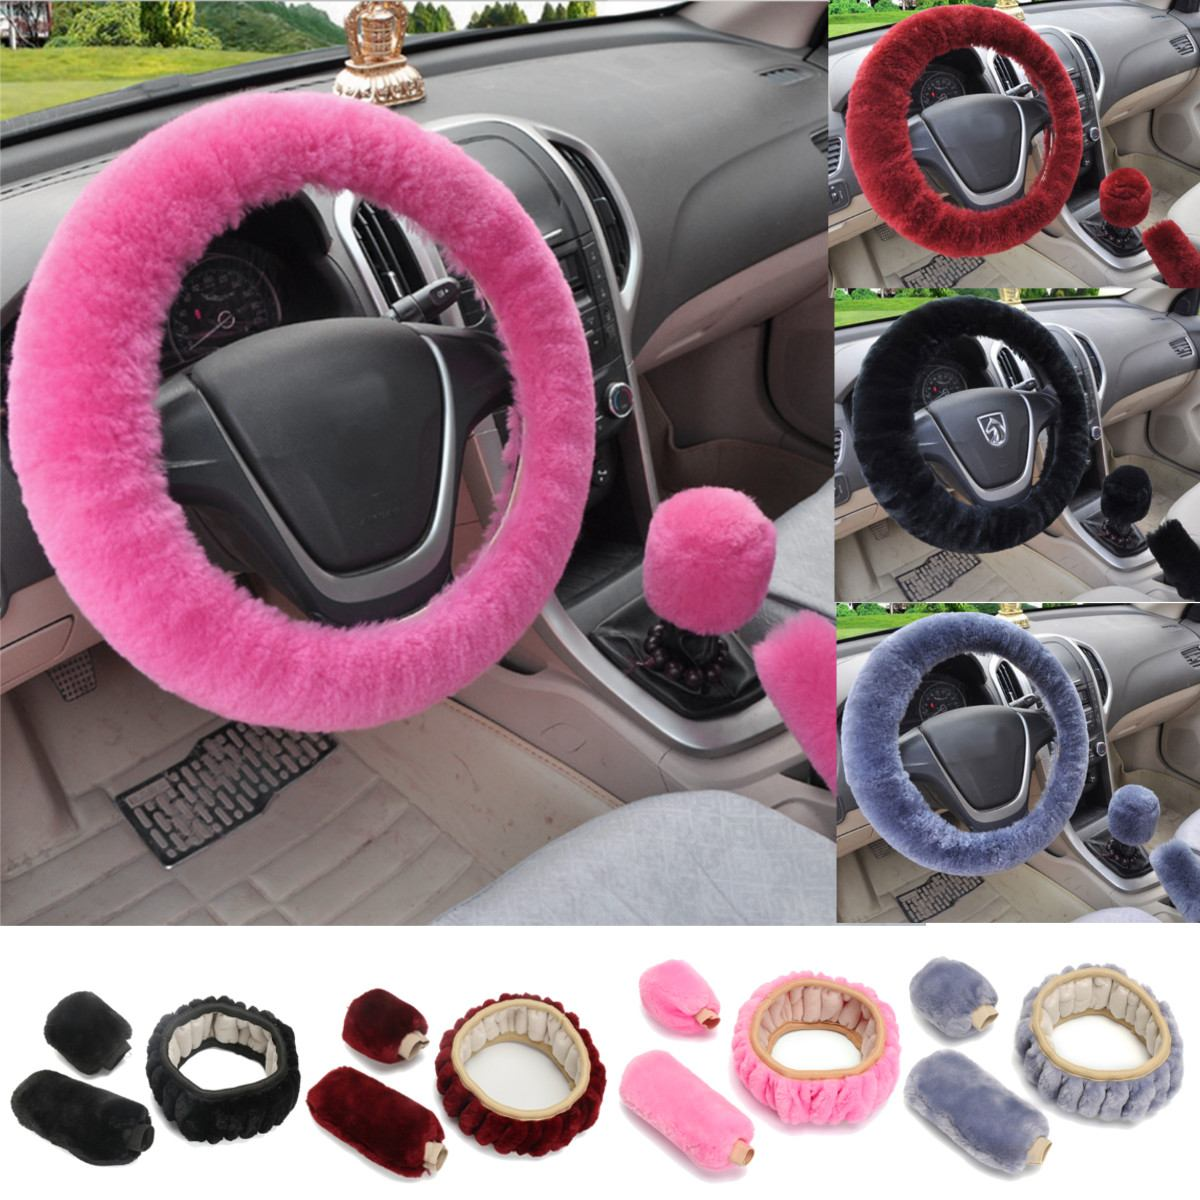 Steering-Wheel-Cover-Kit Wool-Cover Spring Car-Interior-Accessory Auto Winter Soft Plush